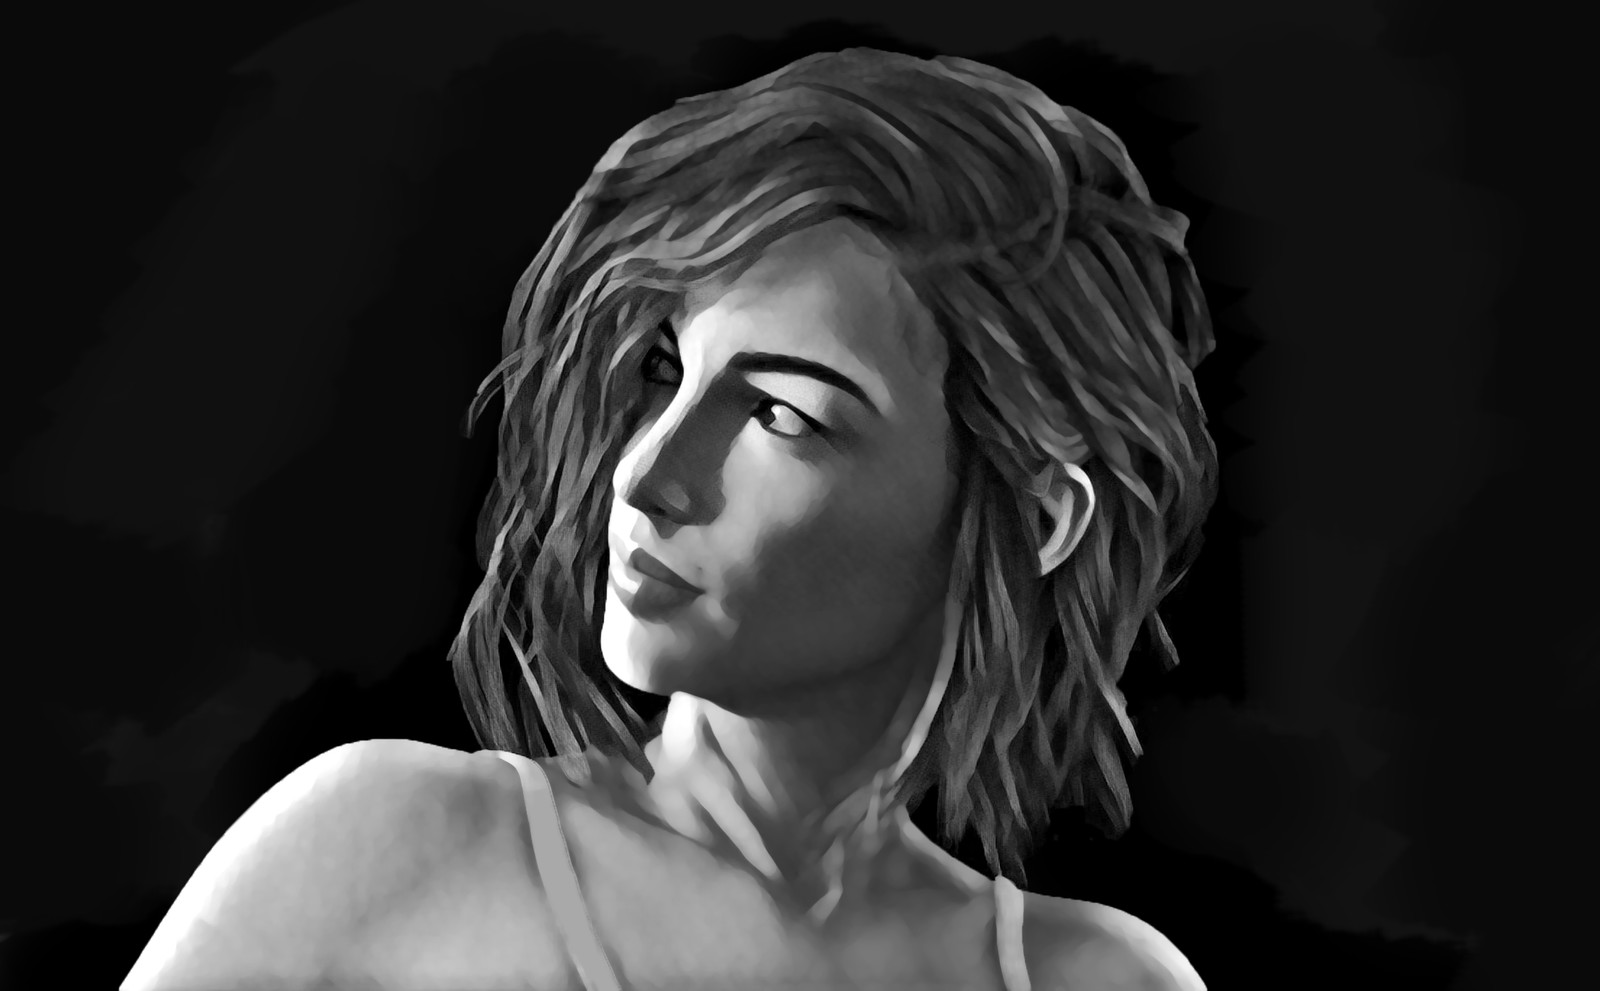 Portrait Study - Black & White